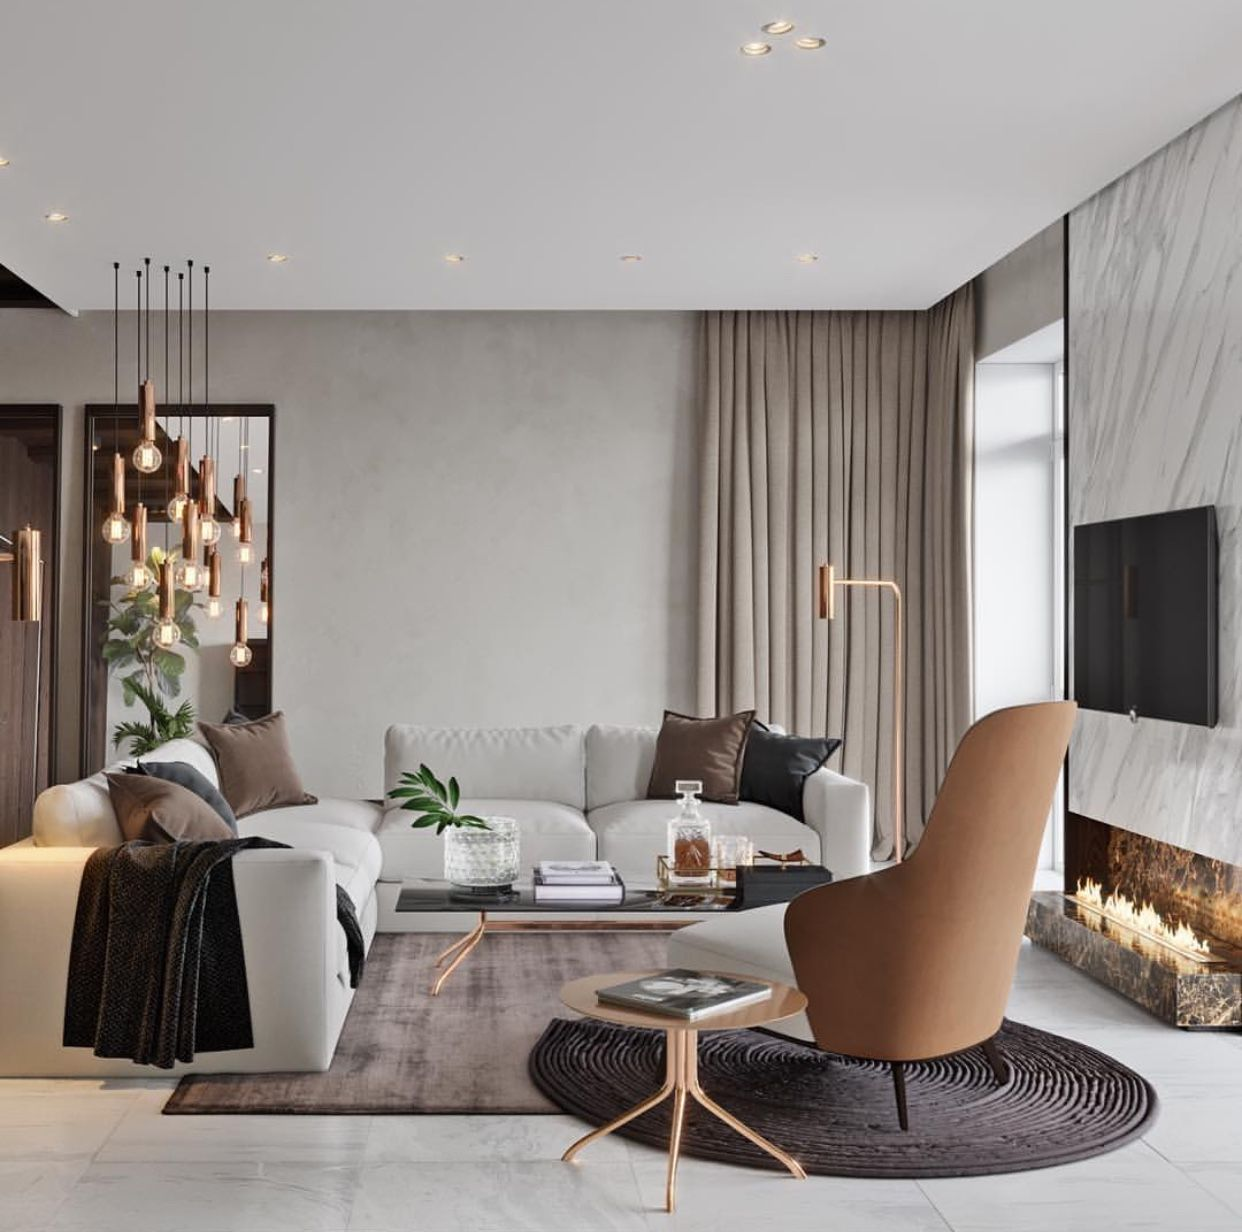 This Is Another Taupe Sofa Color We Like Our House Doesn T Have A Lot Of Windows For N Elegant Living Room Comfy Living Room Design Elegant Living Room Design #taupe #sofa #living #room